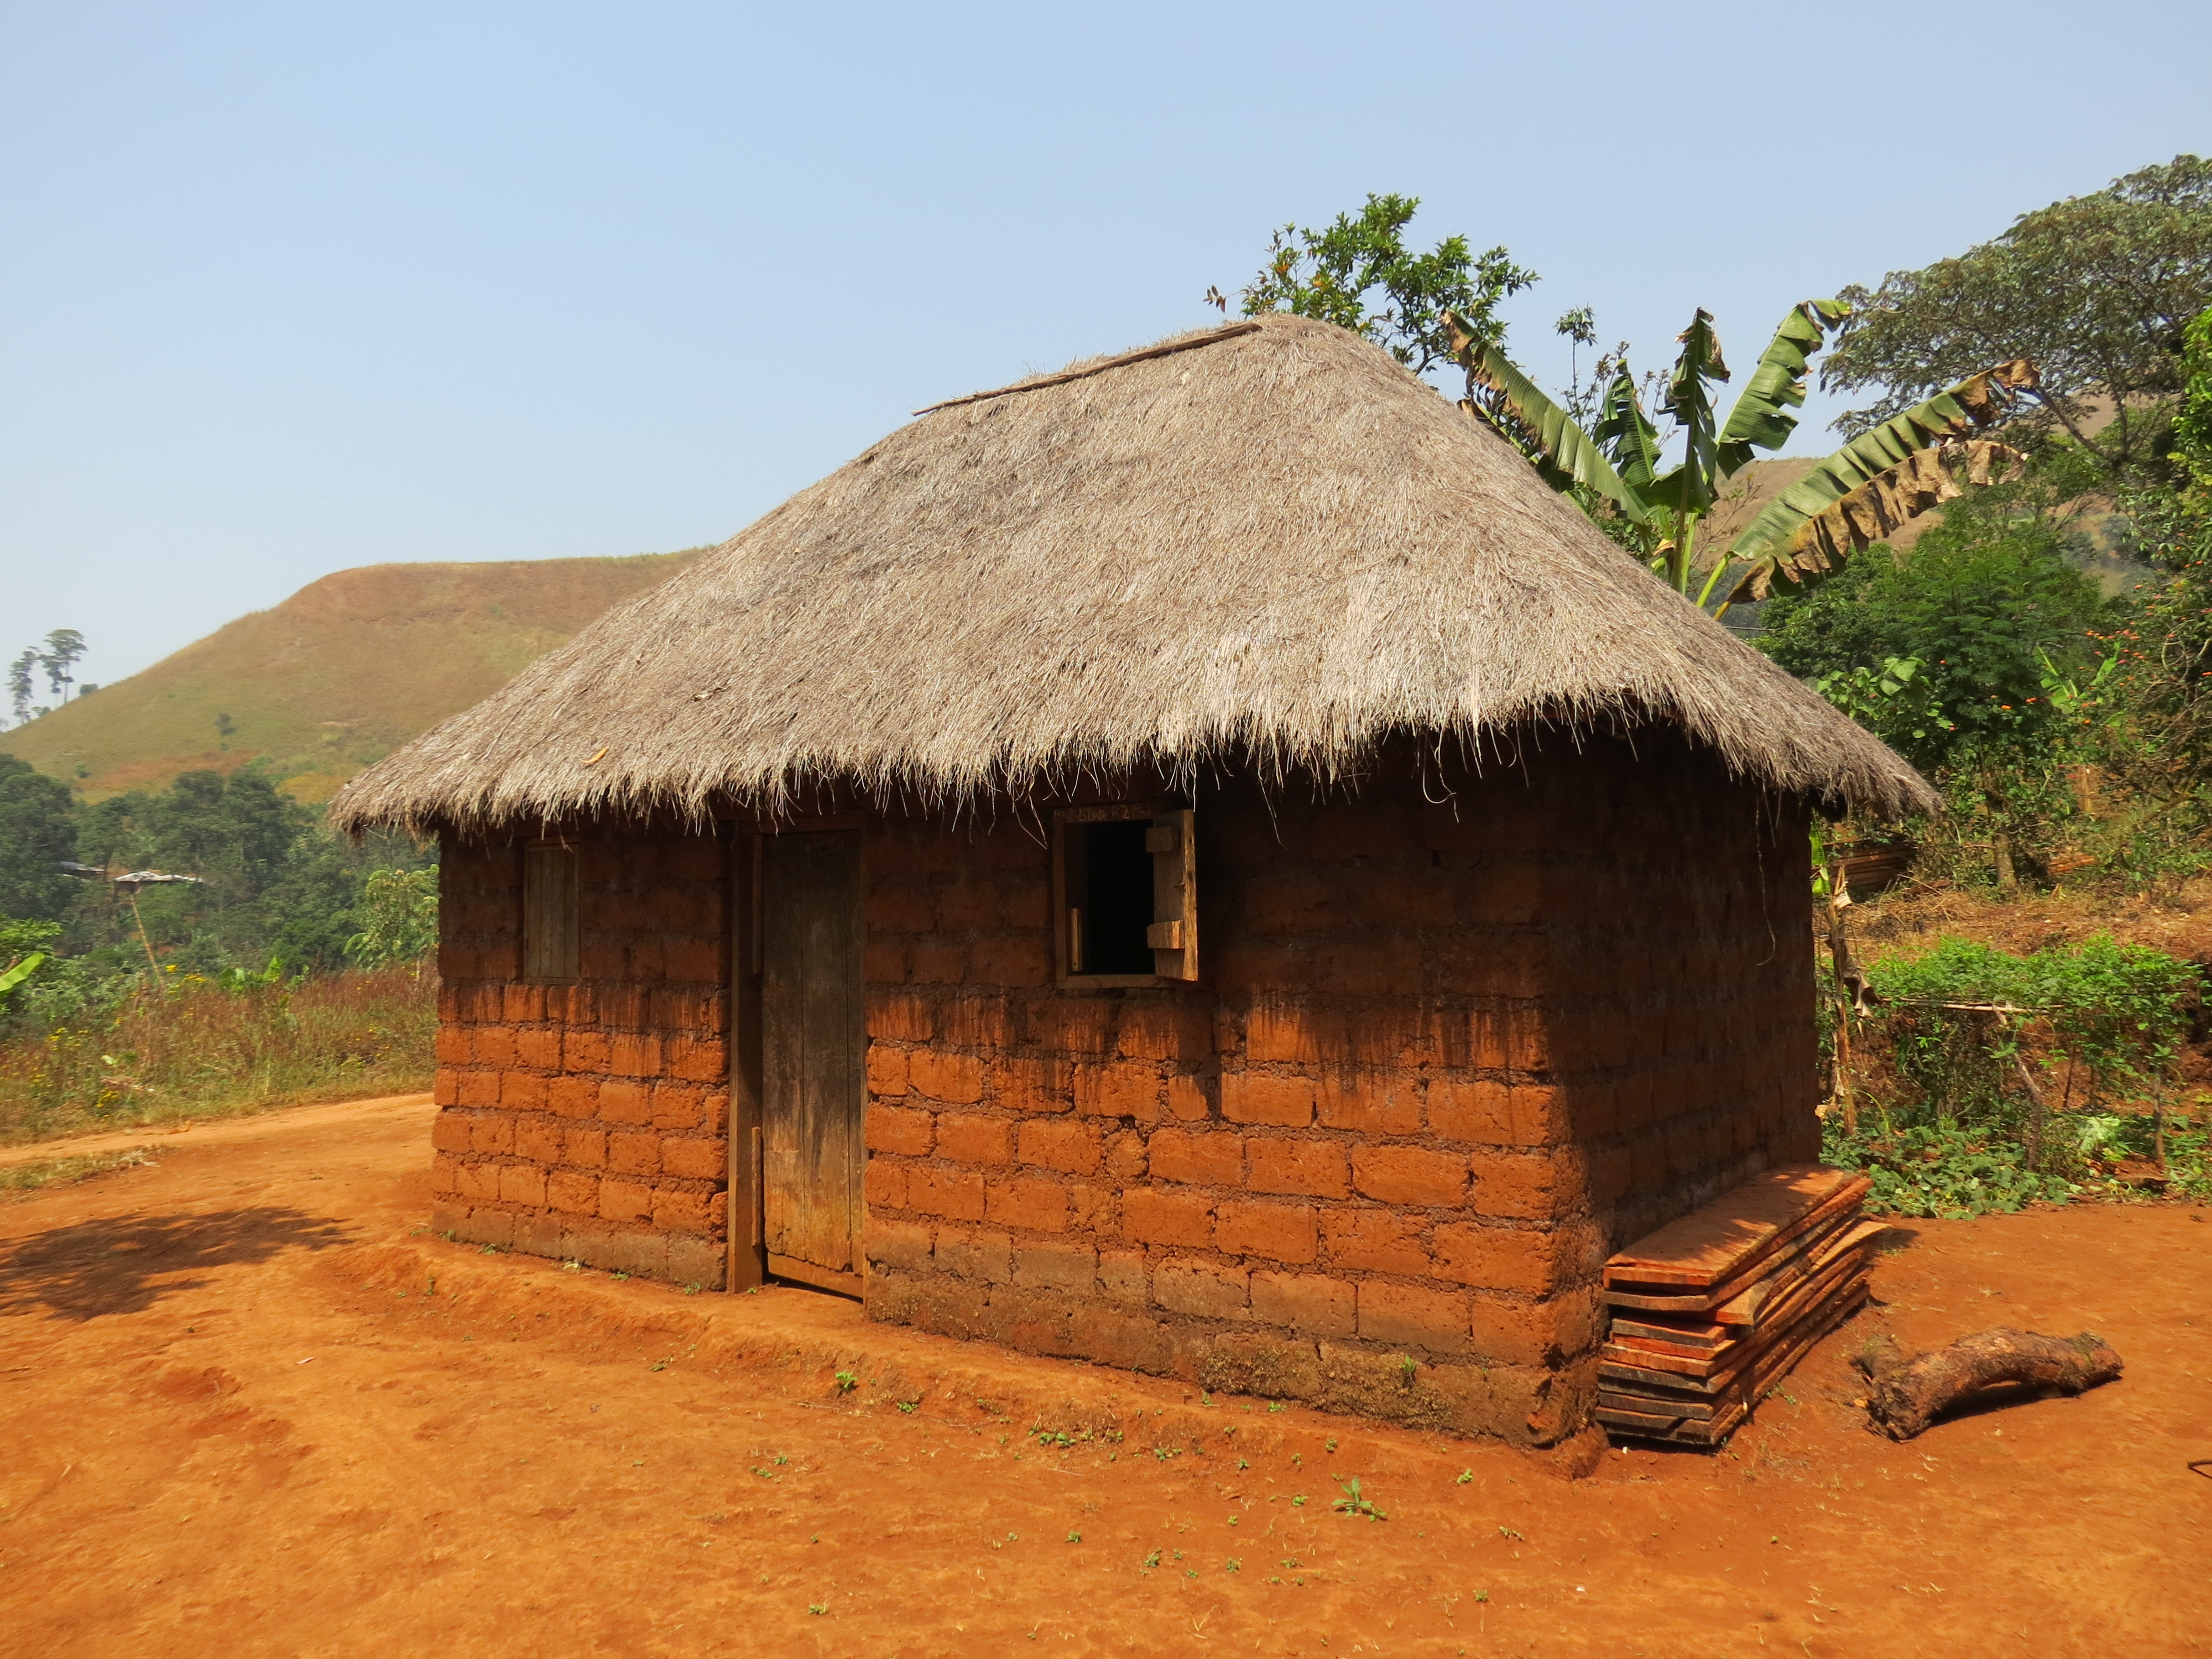 FileHouse Made Of Mud Bricks With A Thatched Roof In Belo 2